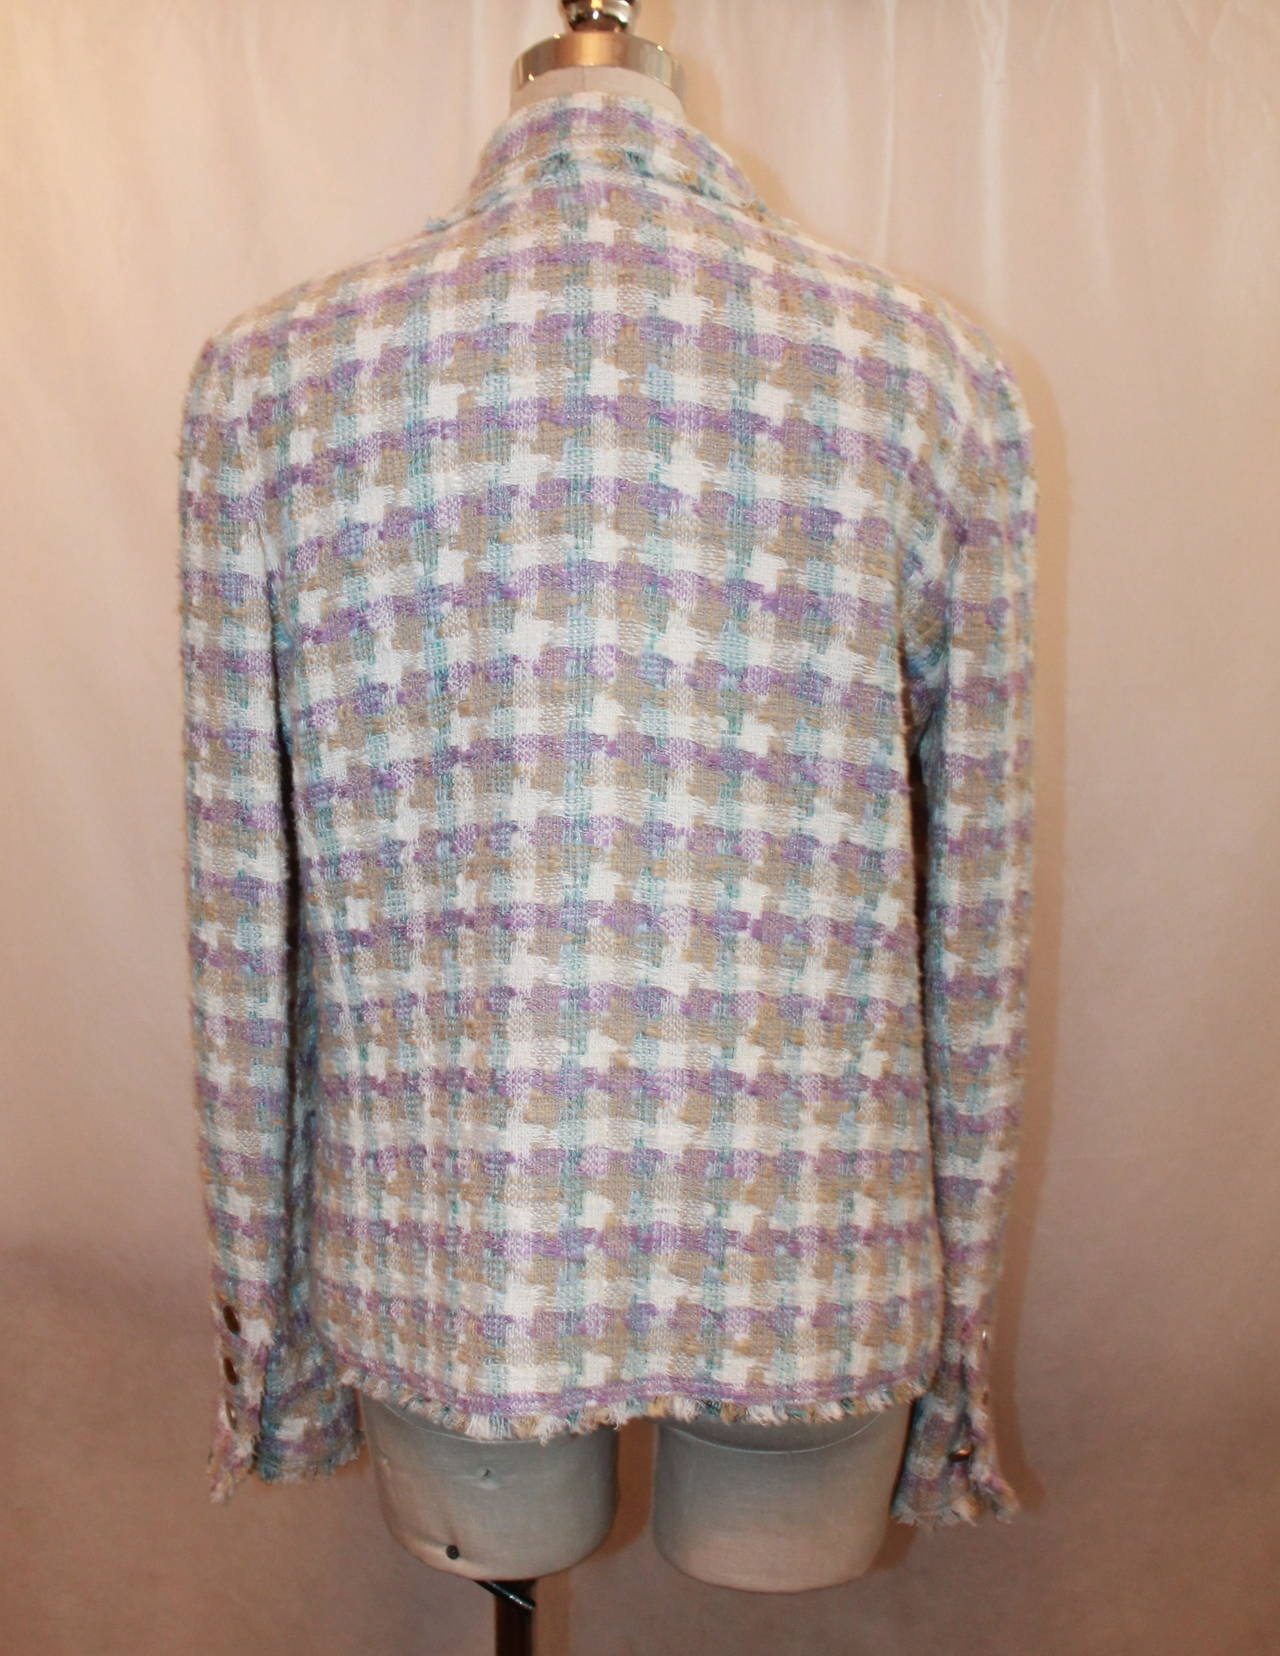 2005 Chanel Multi Color Pastel Tweed Jacket with Mademoiselle Buttons 6